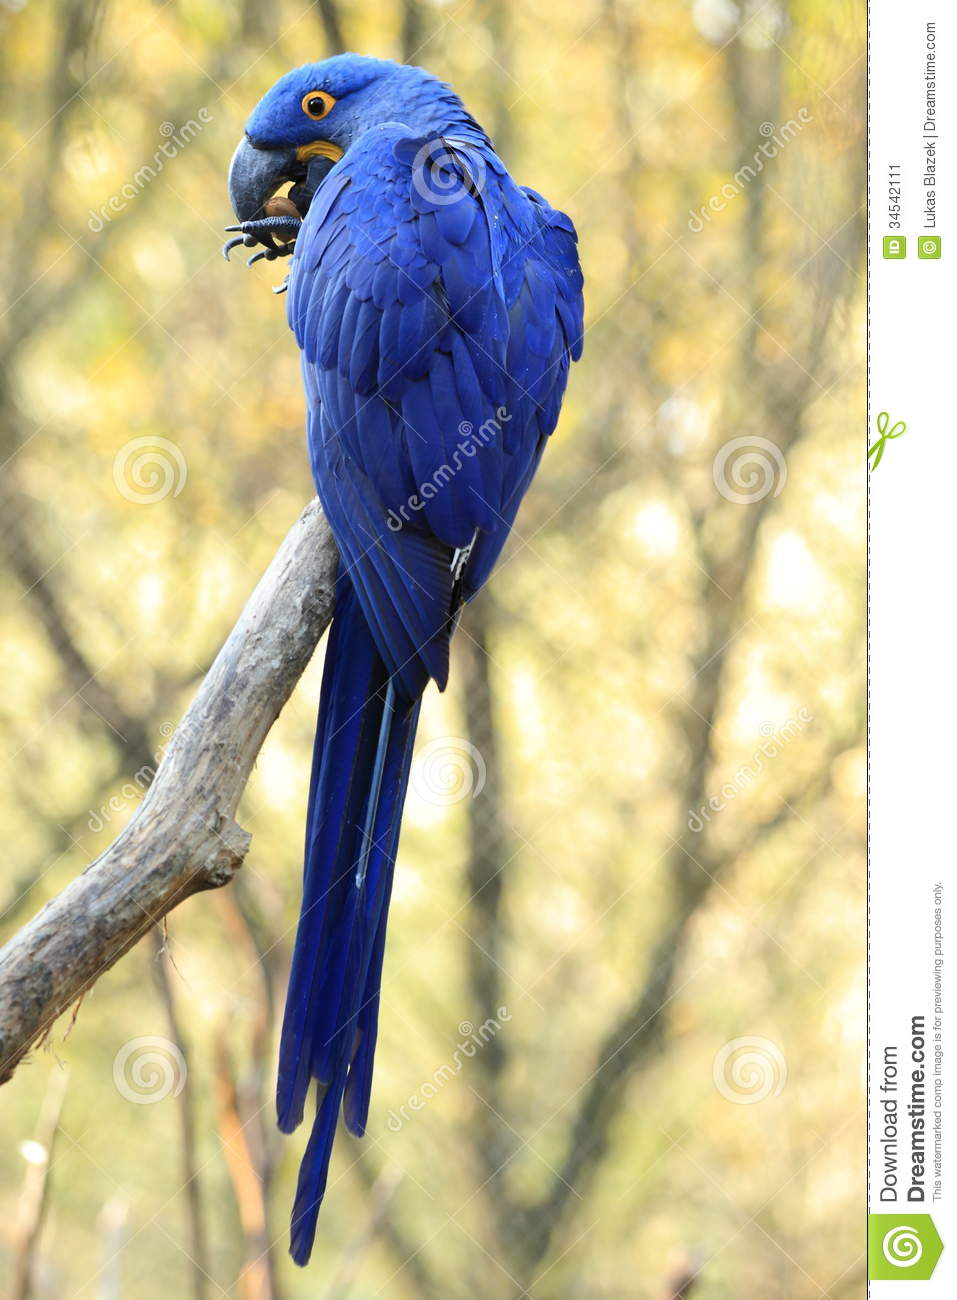 Hyacinth Macaw clipart #6, Download drawings